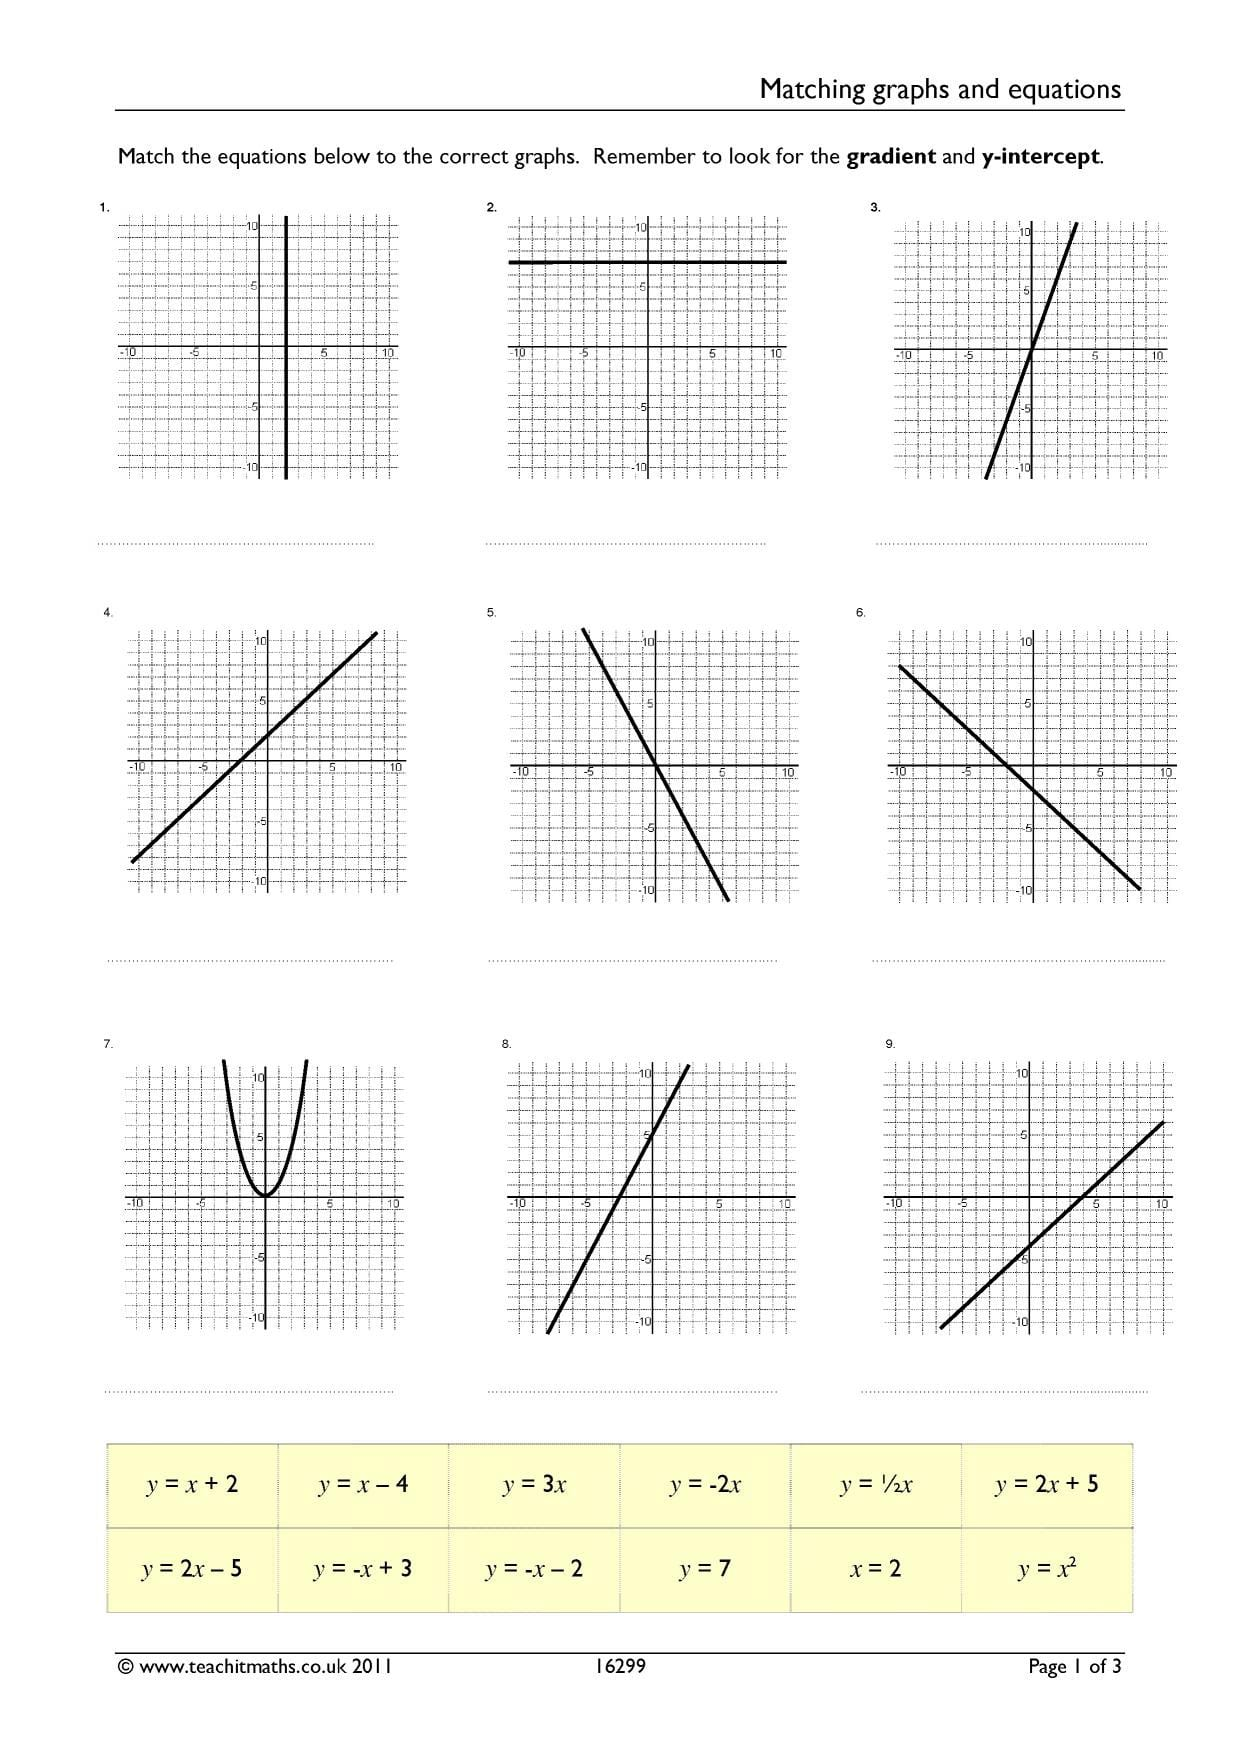 Matching Equations And Graphs Worksheet Answers Db Excel